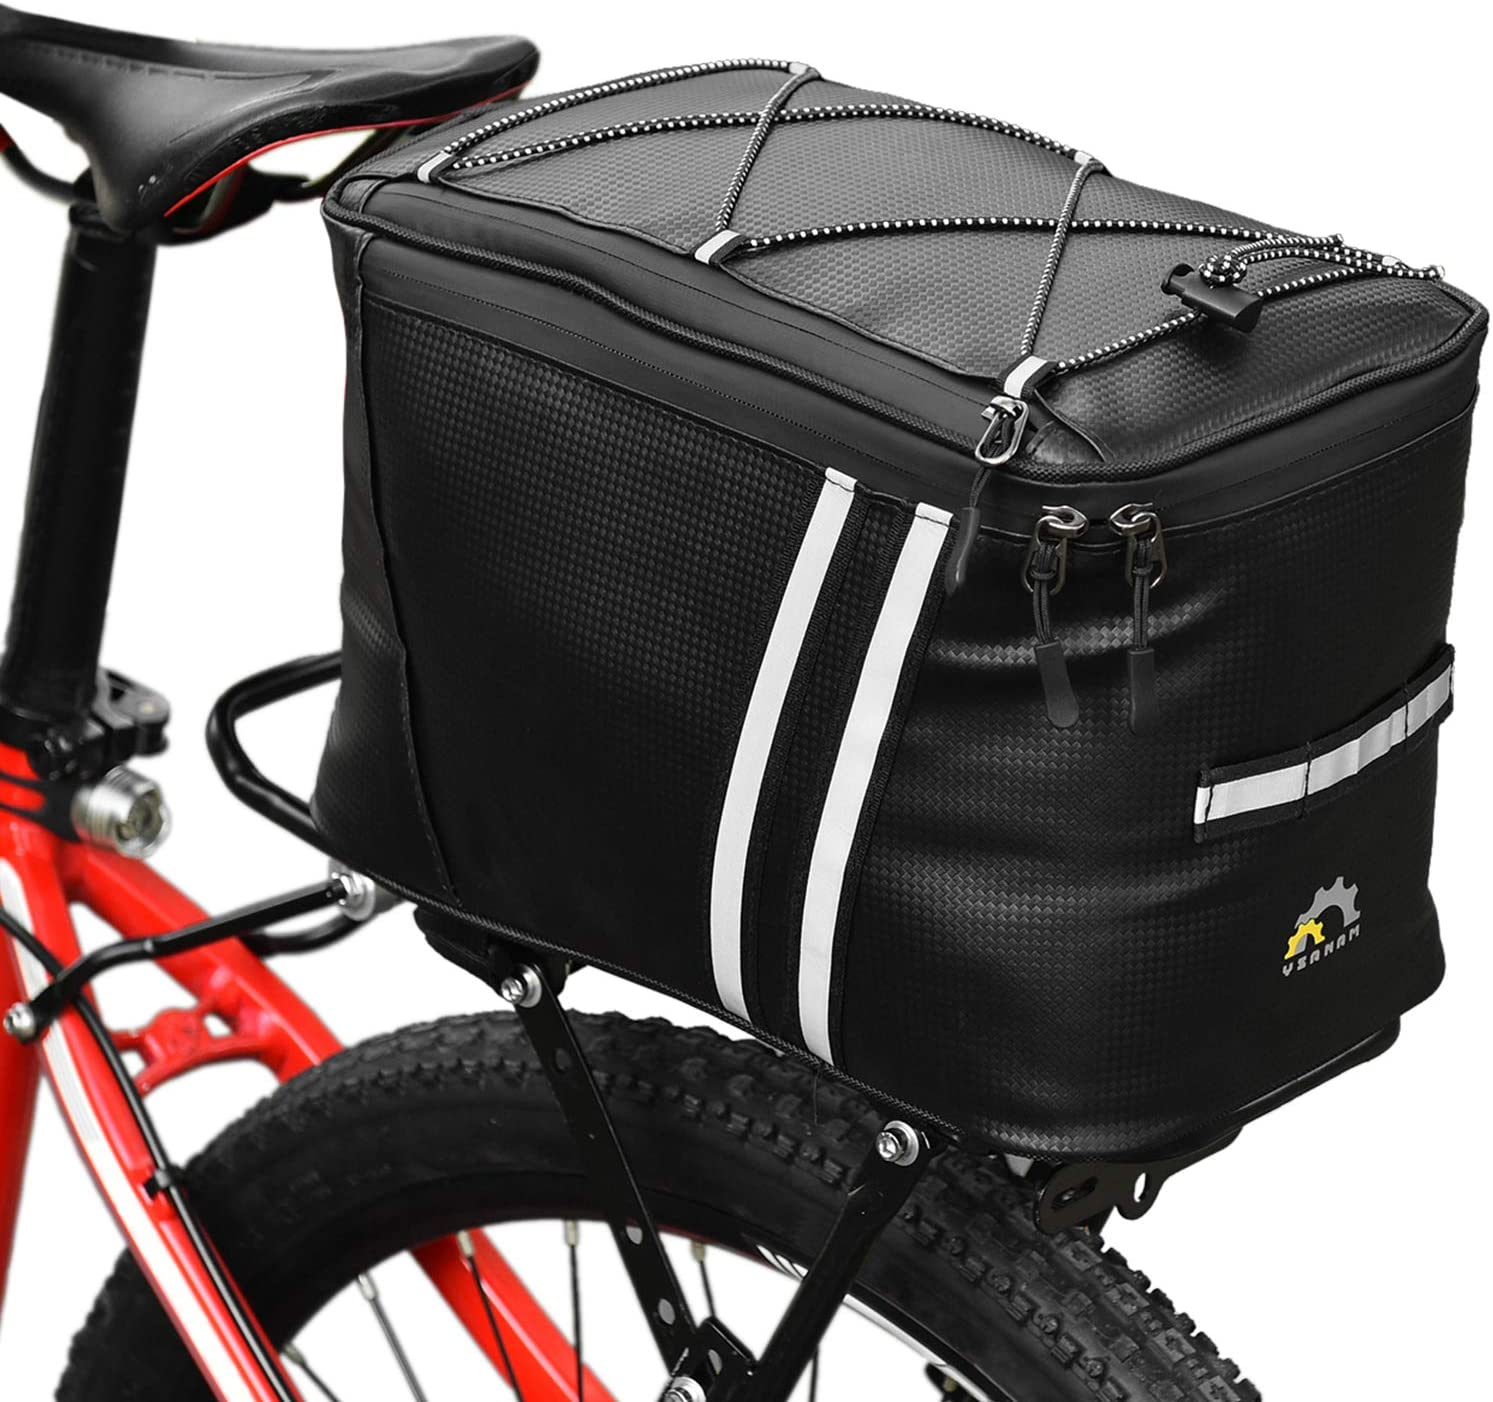 Irfora Water Resistant Bike Rack Bag with Thermal Insulation Compartment Bicycle Bag Bike Trunk Bag